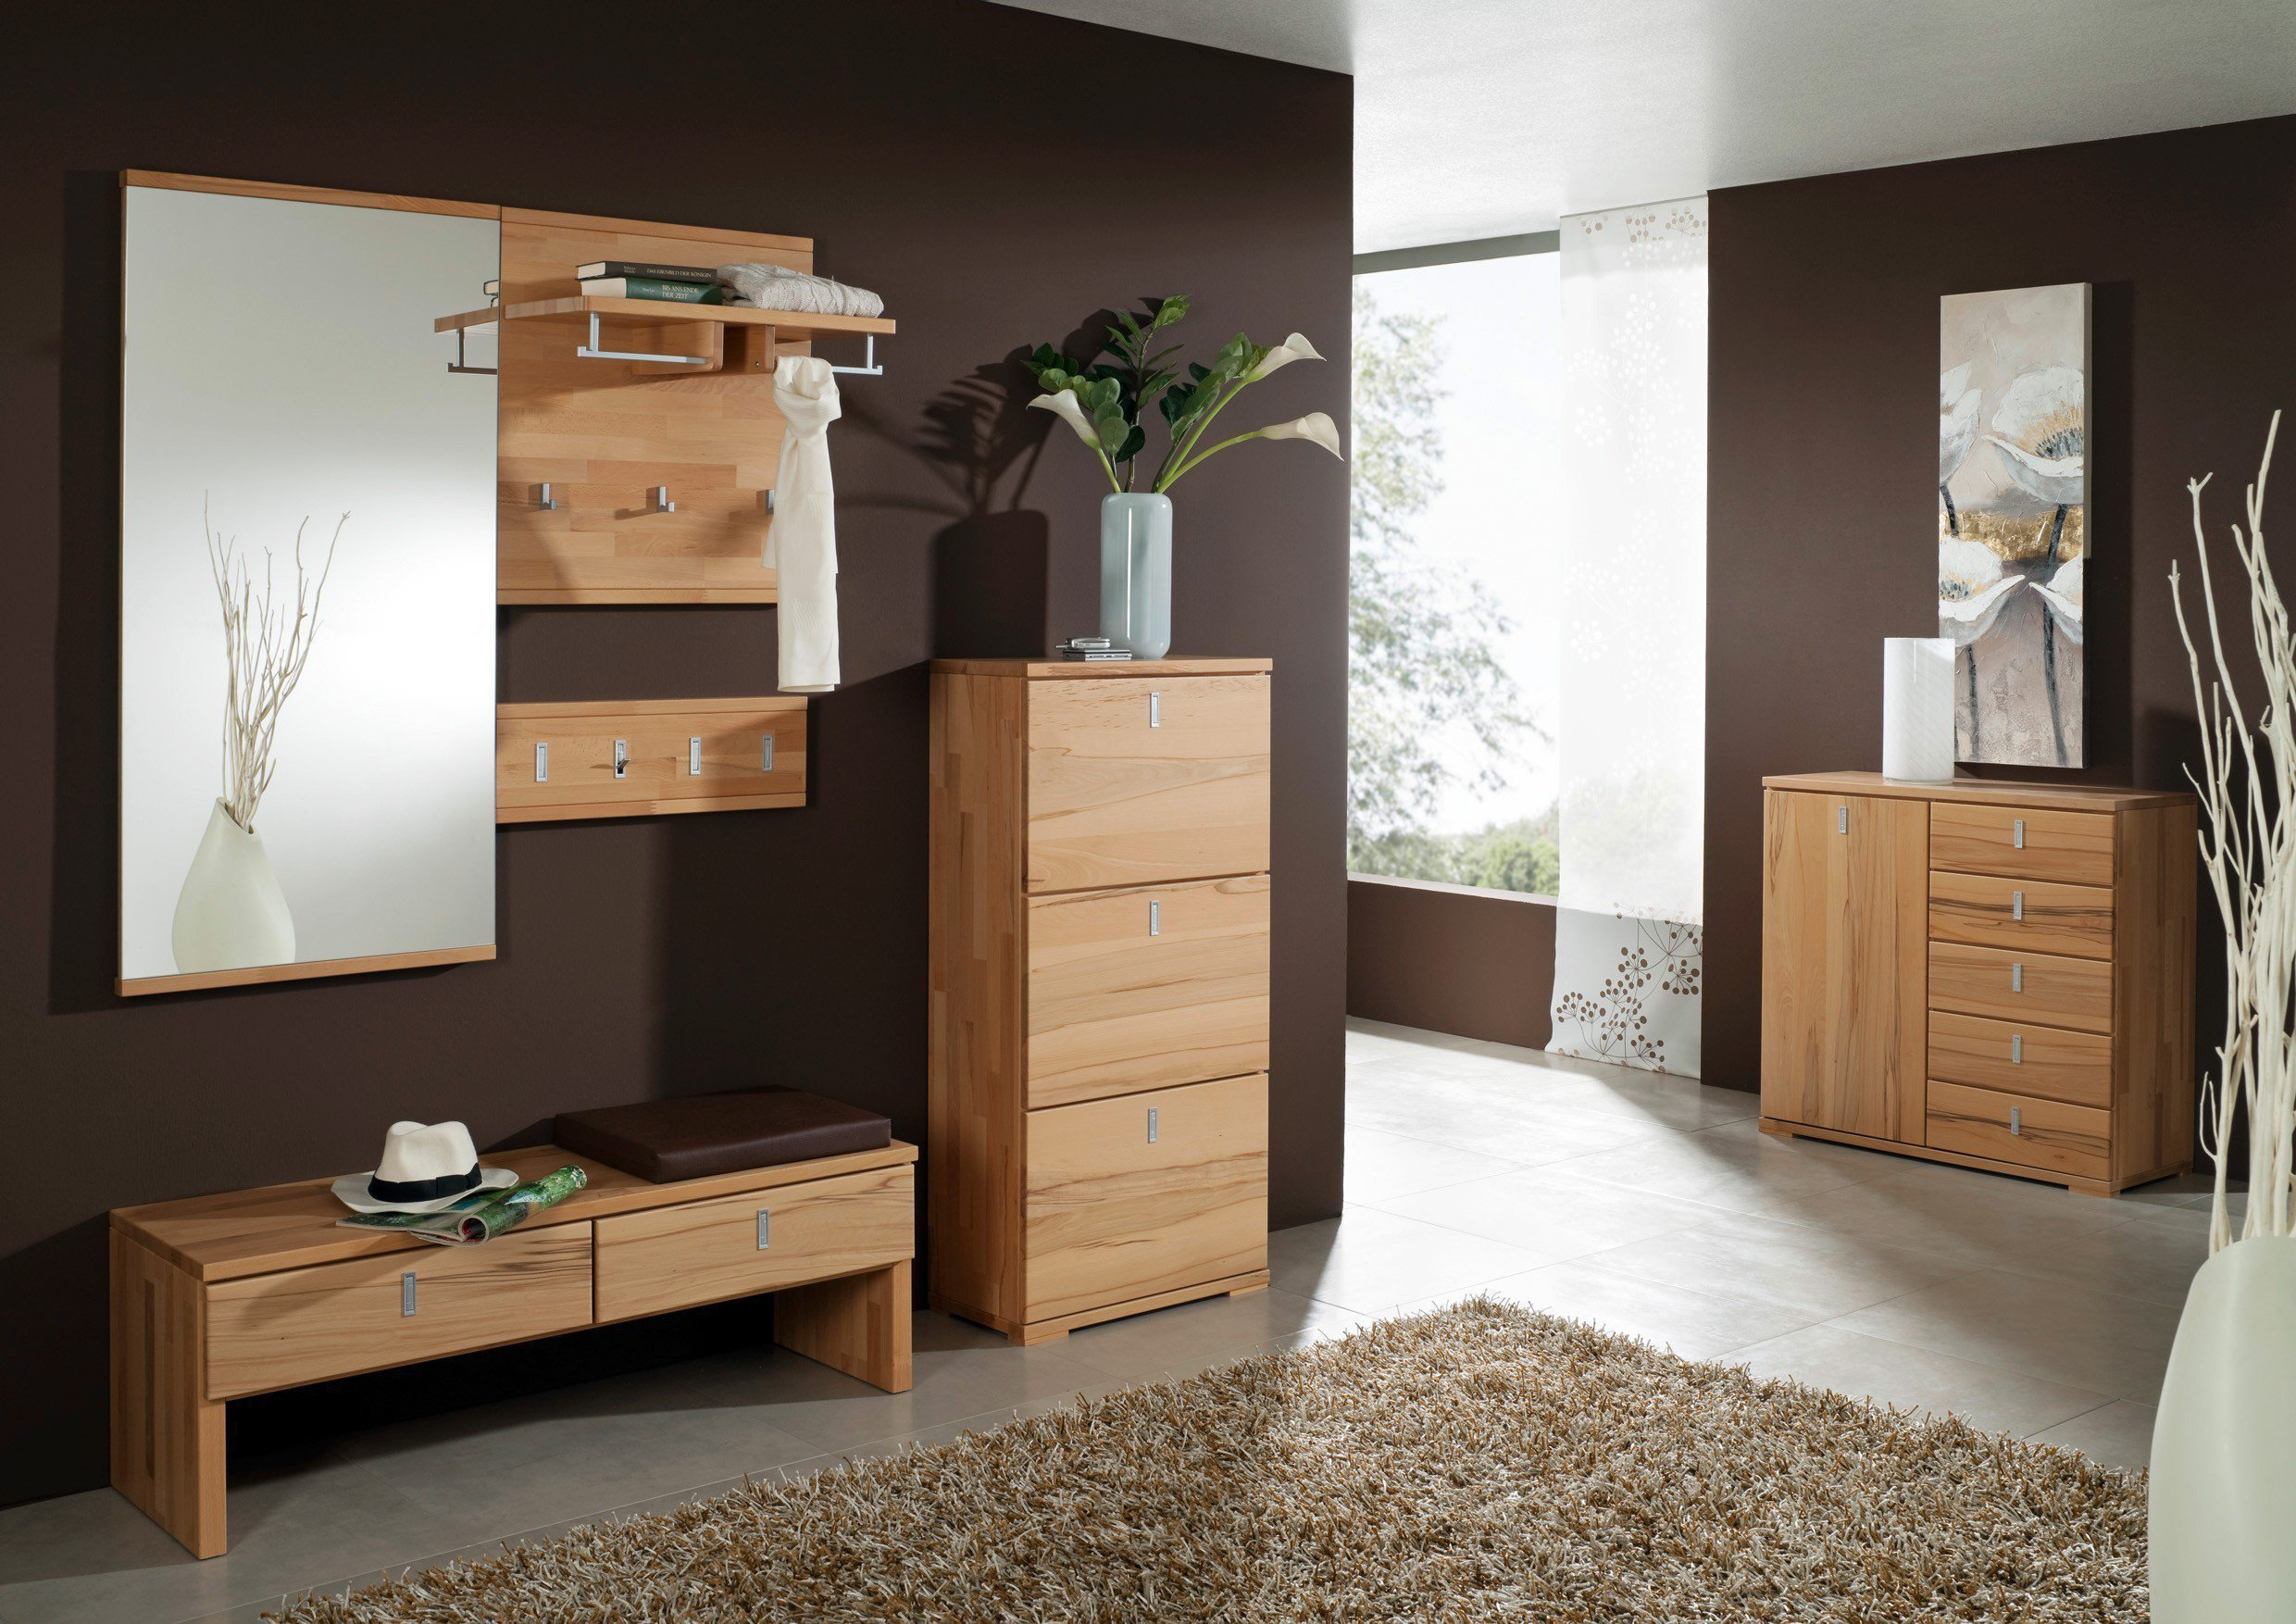 garderoben kernbuche garderobe halifax schubladen with garderoben kernbuche good vicenza. Black Bedroom Furniture Sets. Home Design Ideas